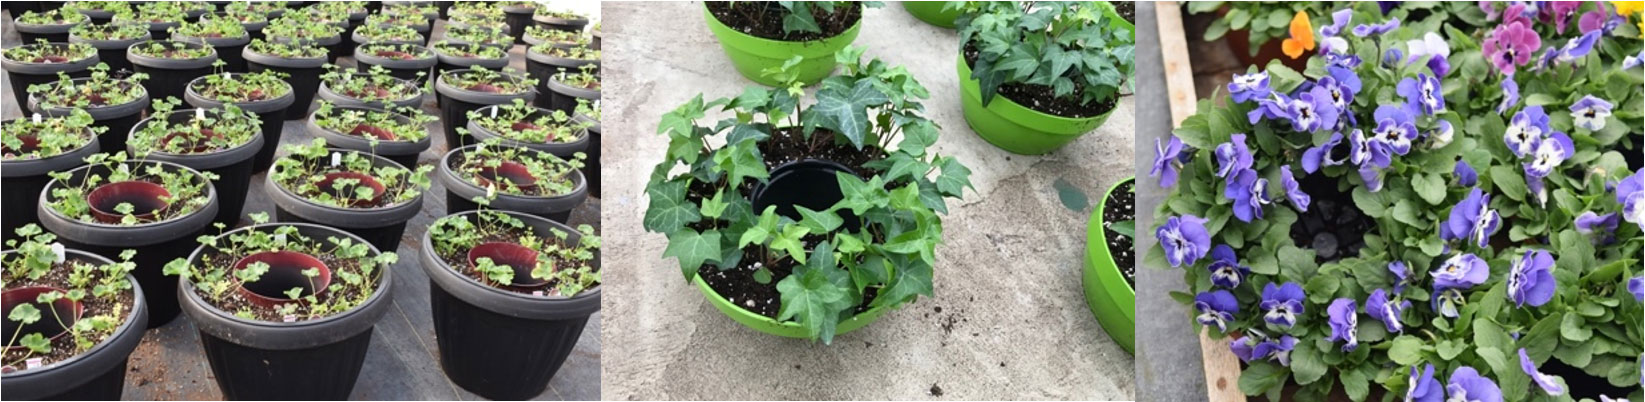 containers planted with geraniums